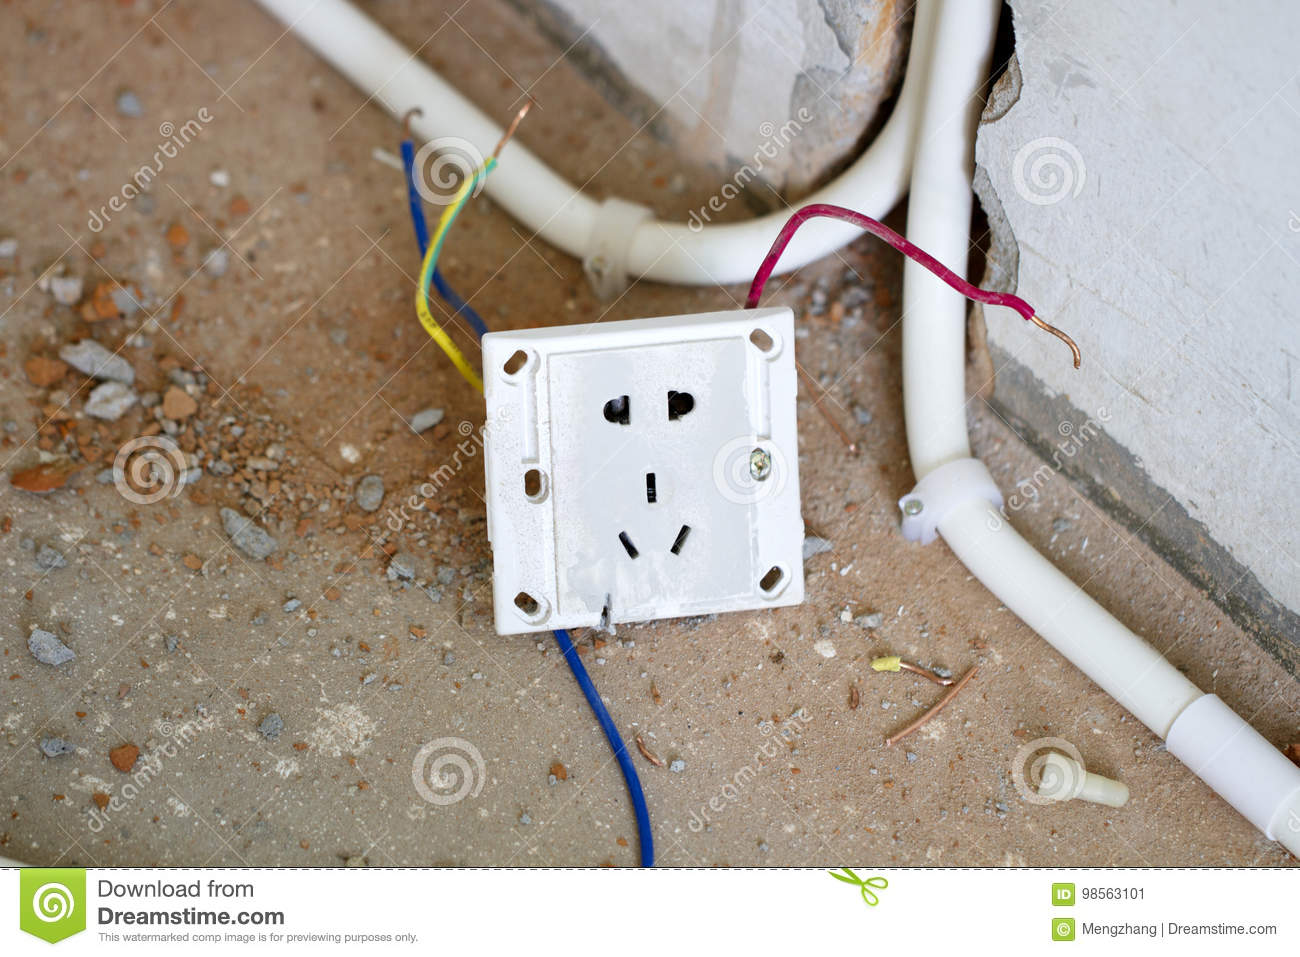 Electrical Renovation Work Light Plug Stock Image Of Close Wiring A Power Cable Electricelectrical Box With During Residential Renovationa Hanging Off The Wall